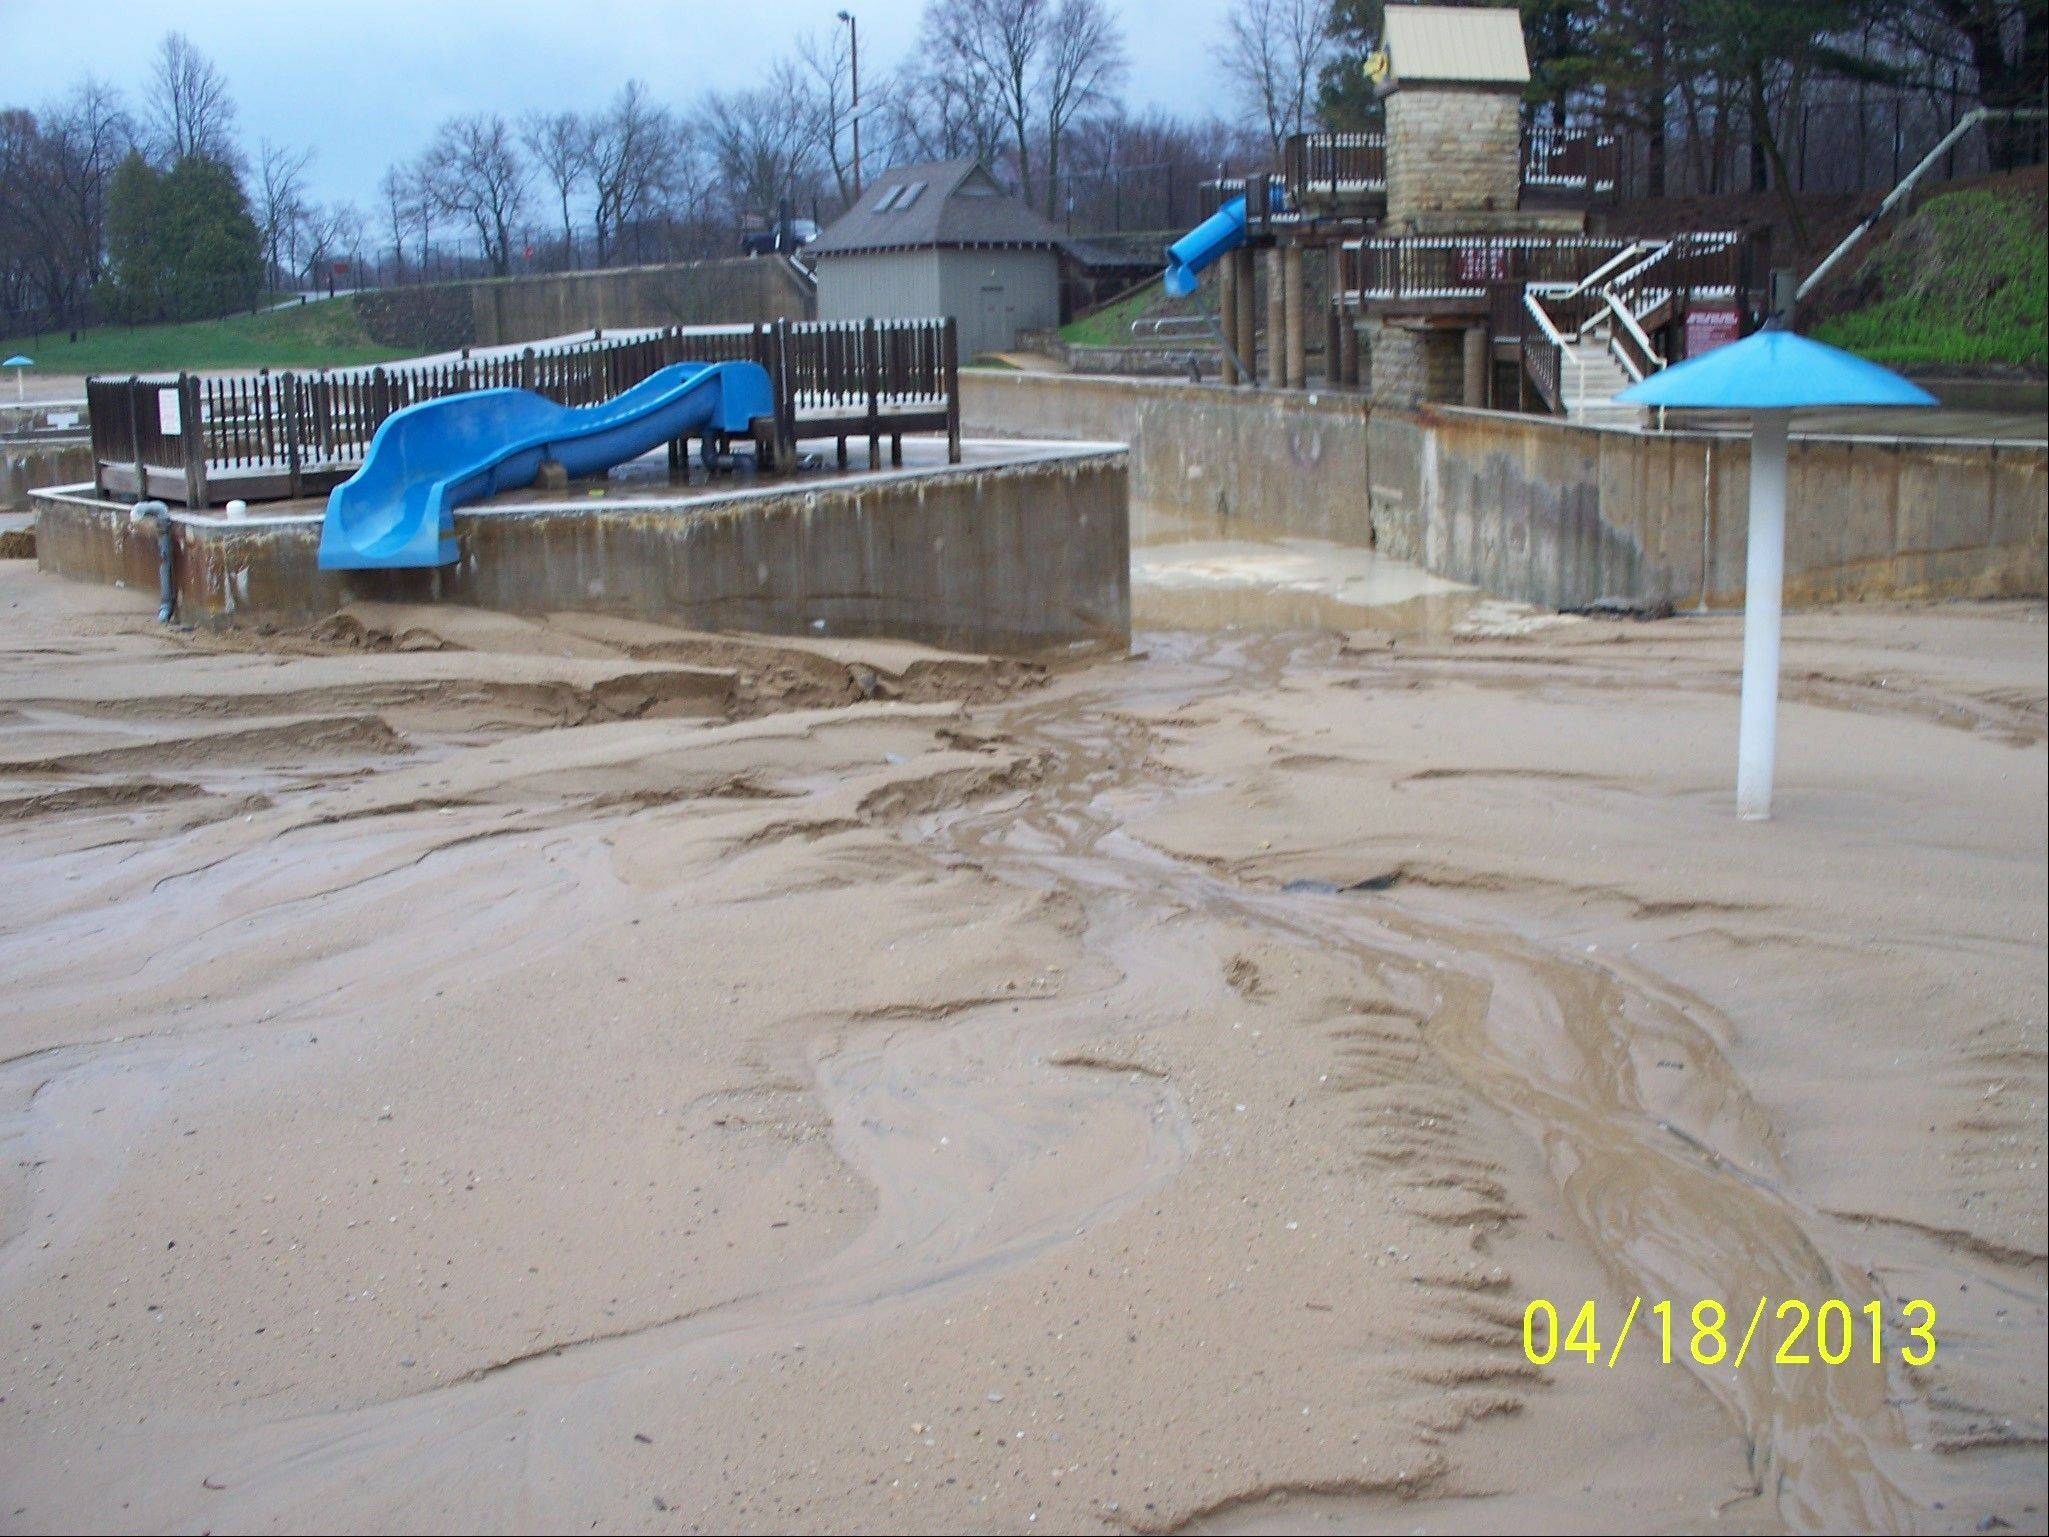 Last week's storm may delay opening of Quarry Beach in Batavia